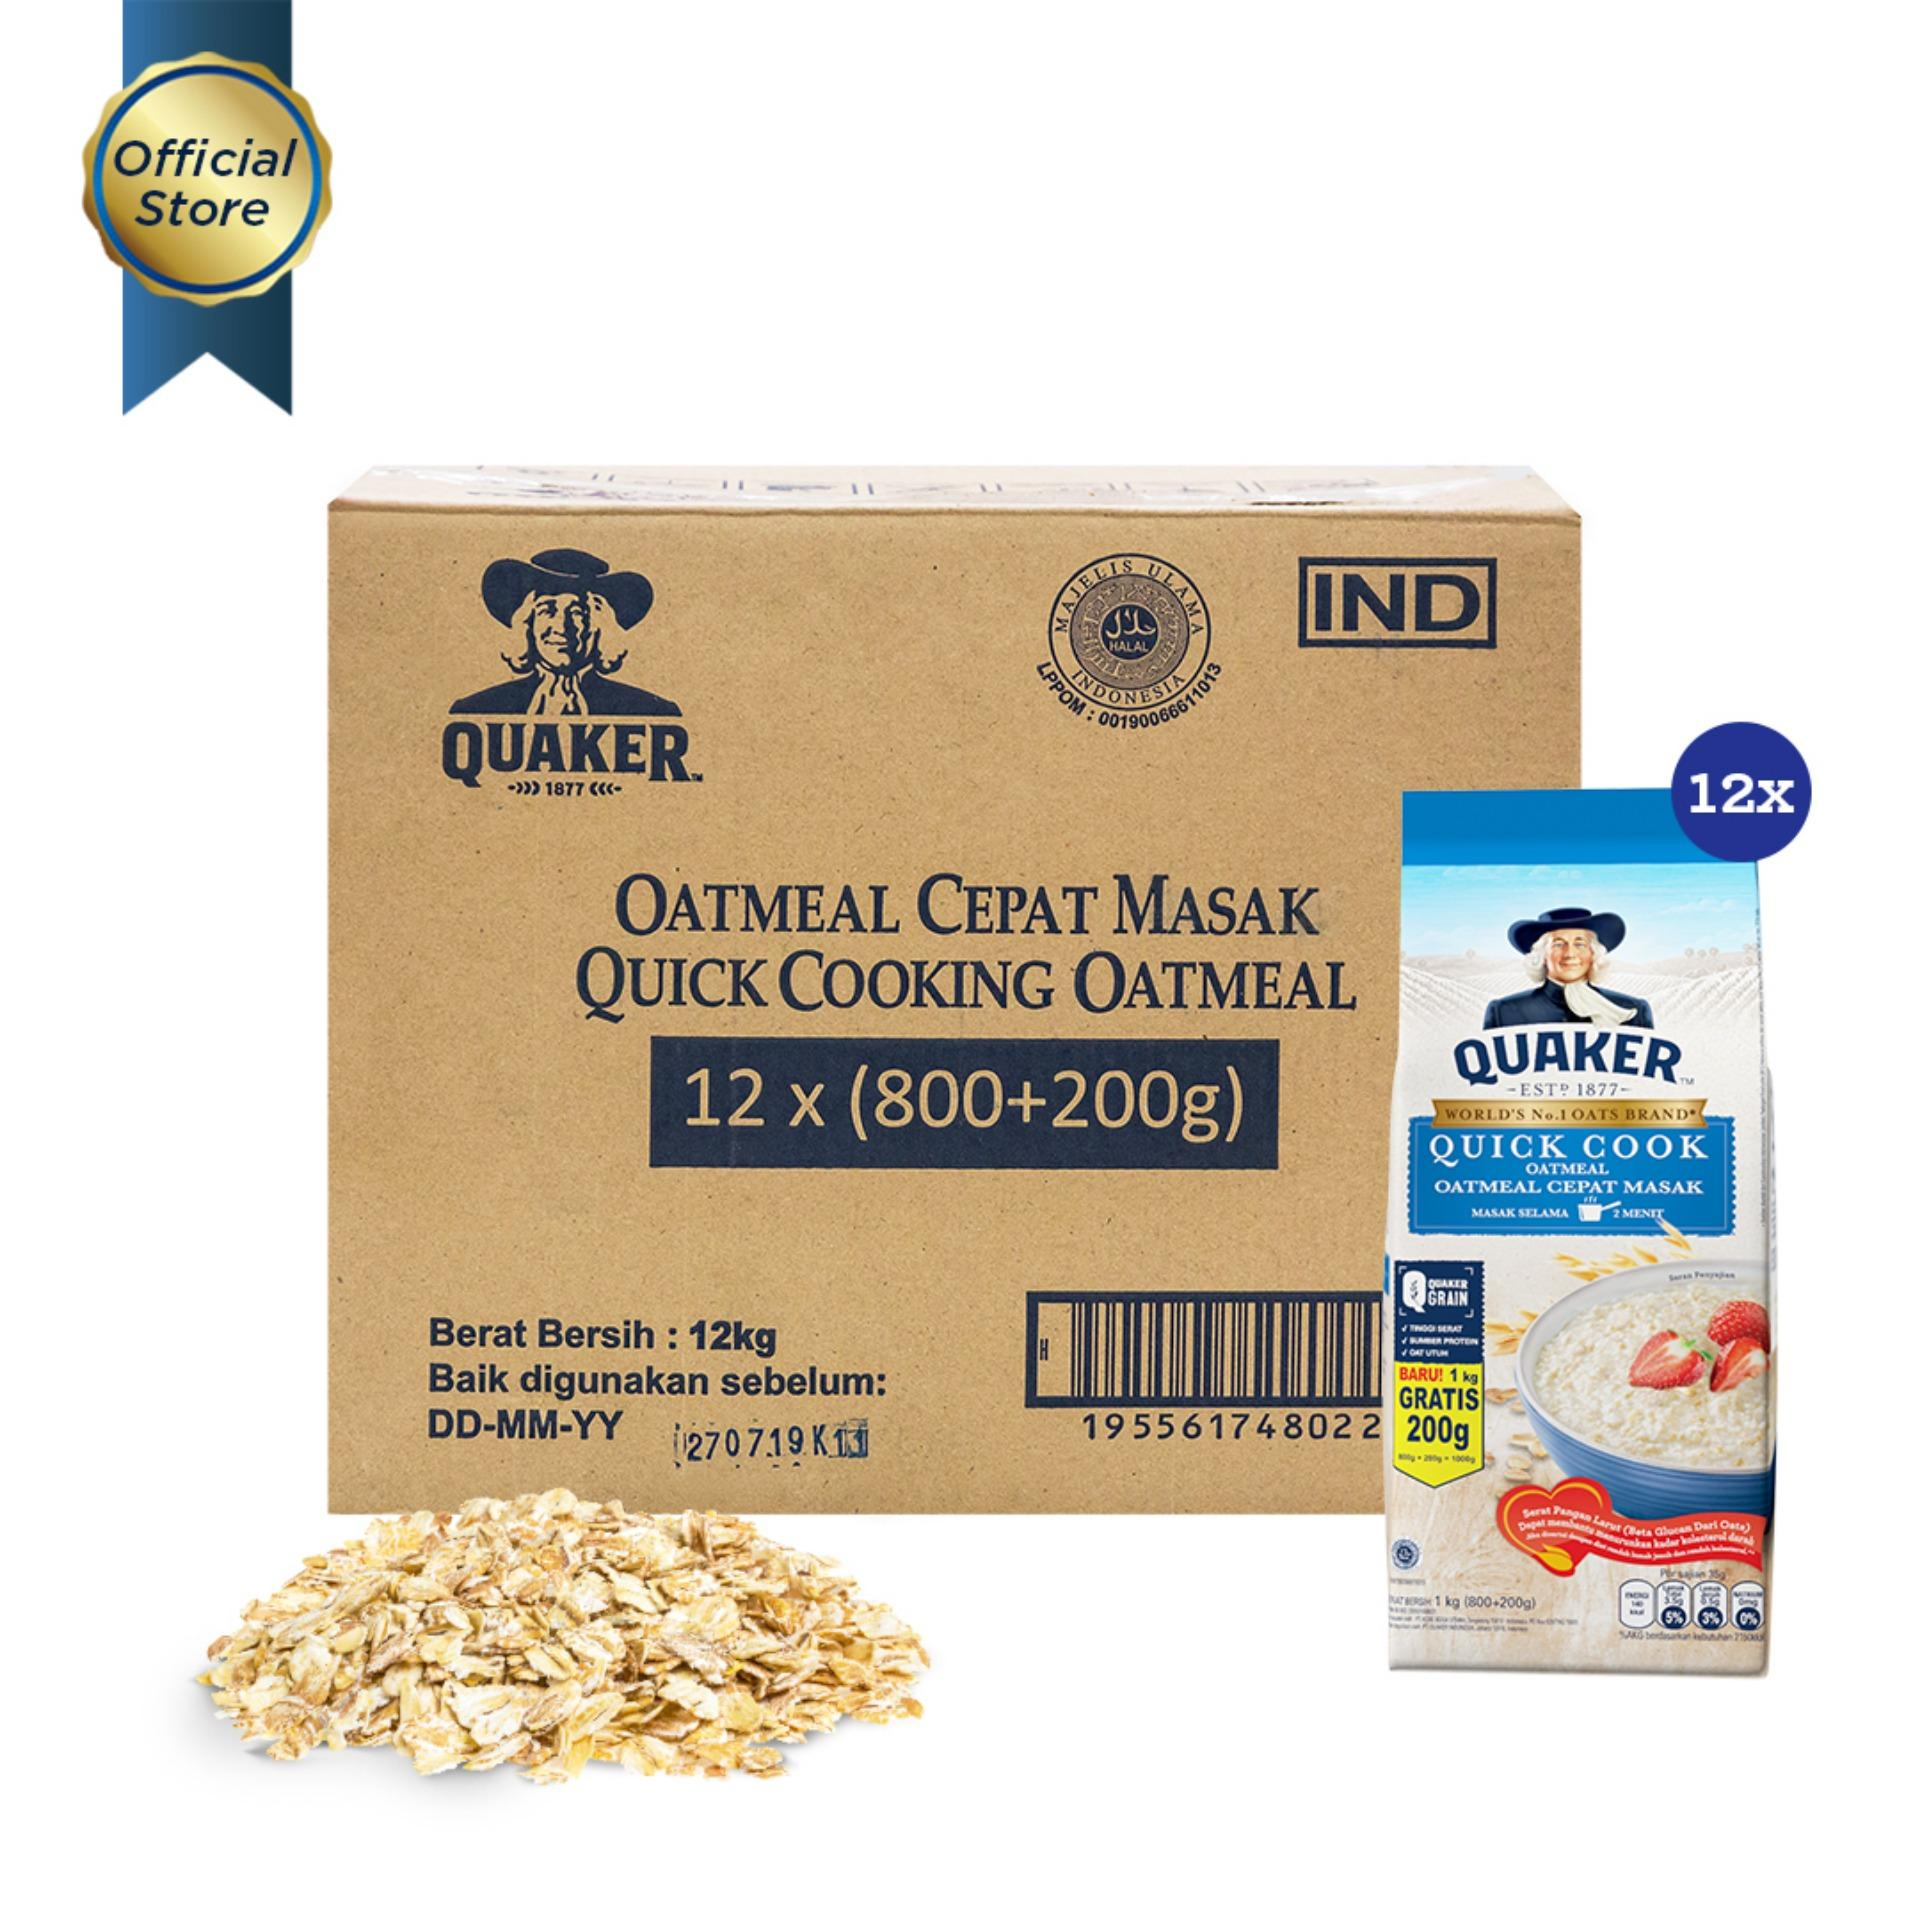 Jual Haverjoy Australian Rolled Oats 500 Gram Harga Spesifikasi Source · Quaker Quick Cooking Oatmeal Large Pack 800g 200g 1 Carton 12 Pcs